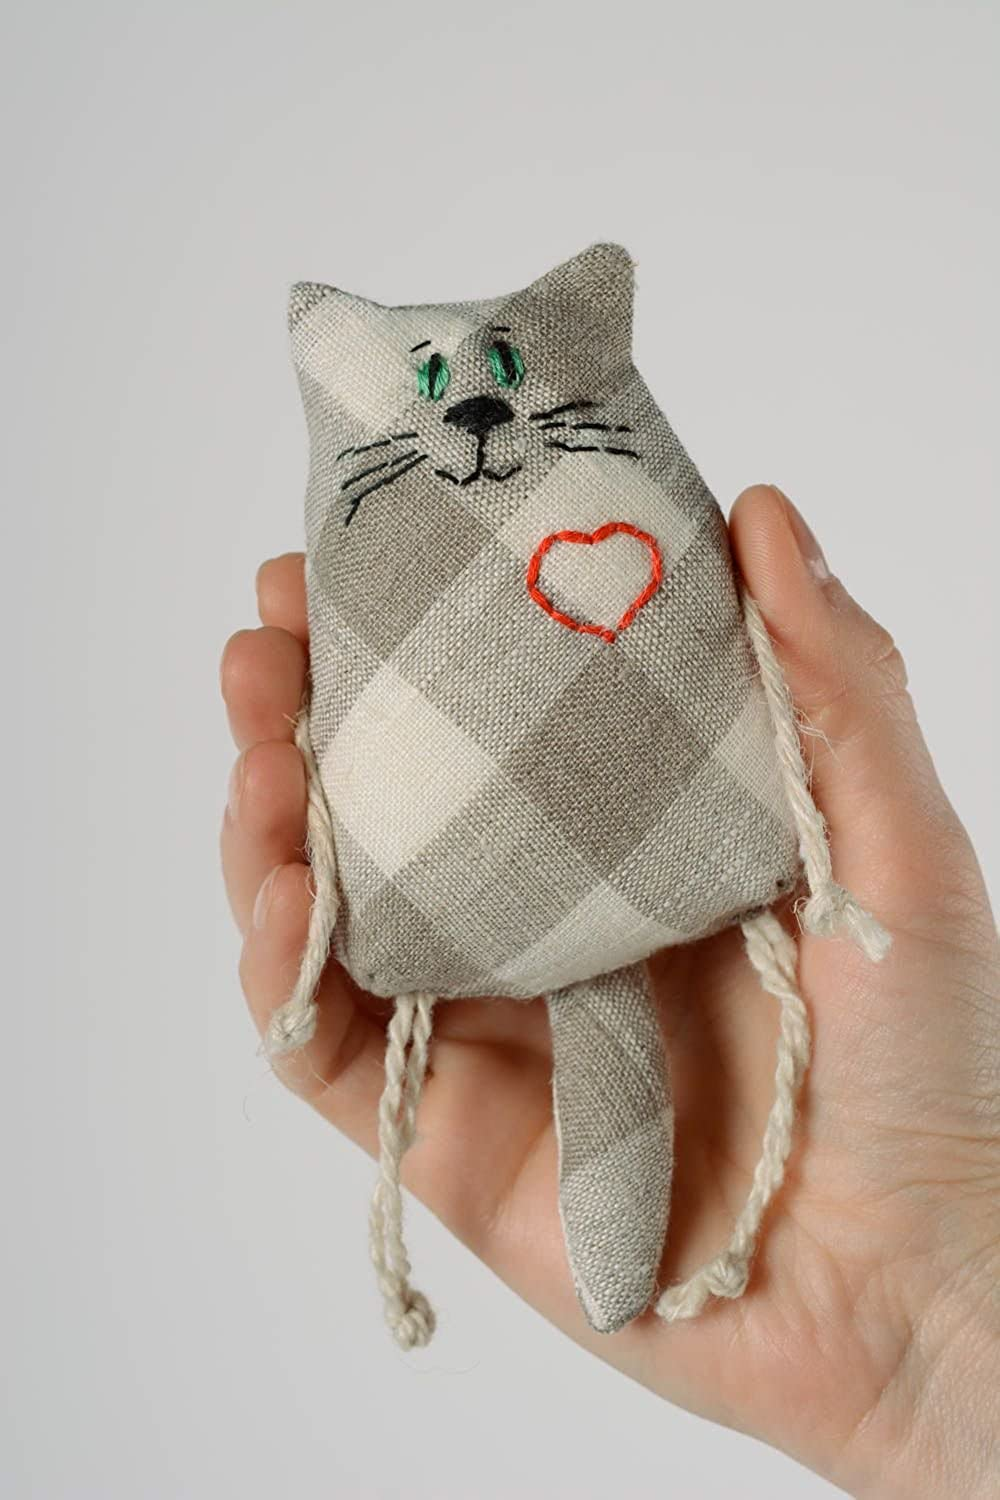 Handmade Small Soft Toy Cat Sewn Of Checkered Linen Fabric With Embroidered Heart